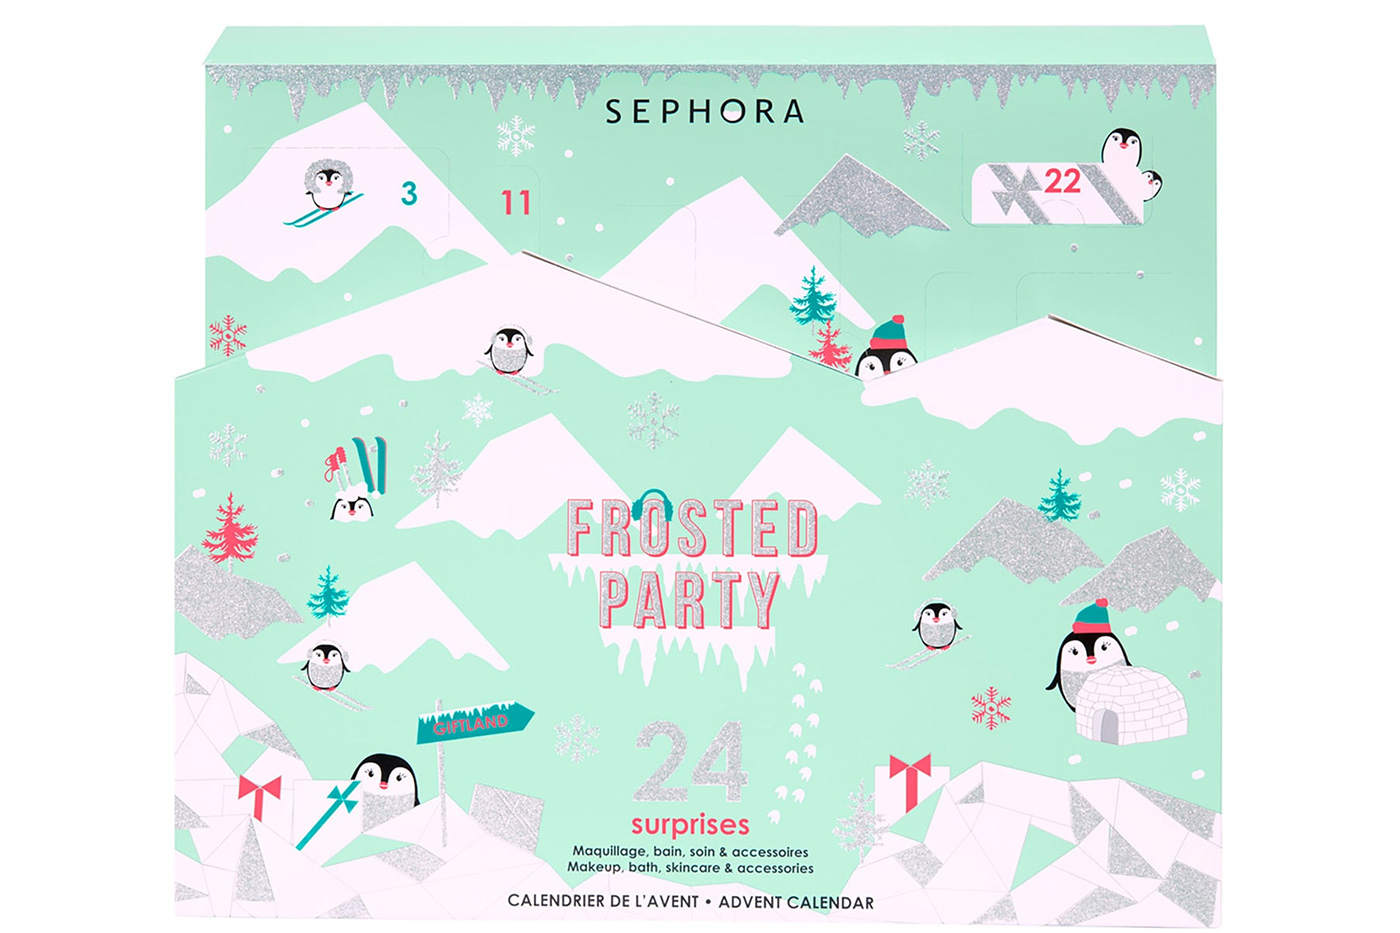 Calendrier De L Avent Sephora 2019 Frosted Party Code Promo Spoiler